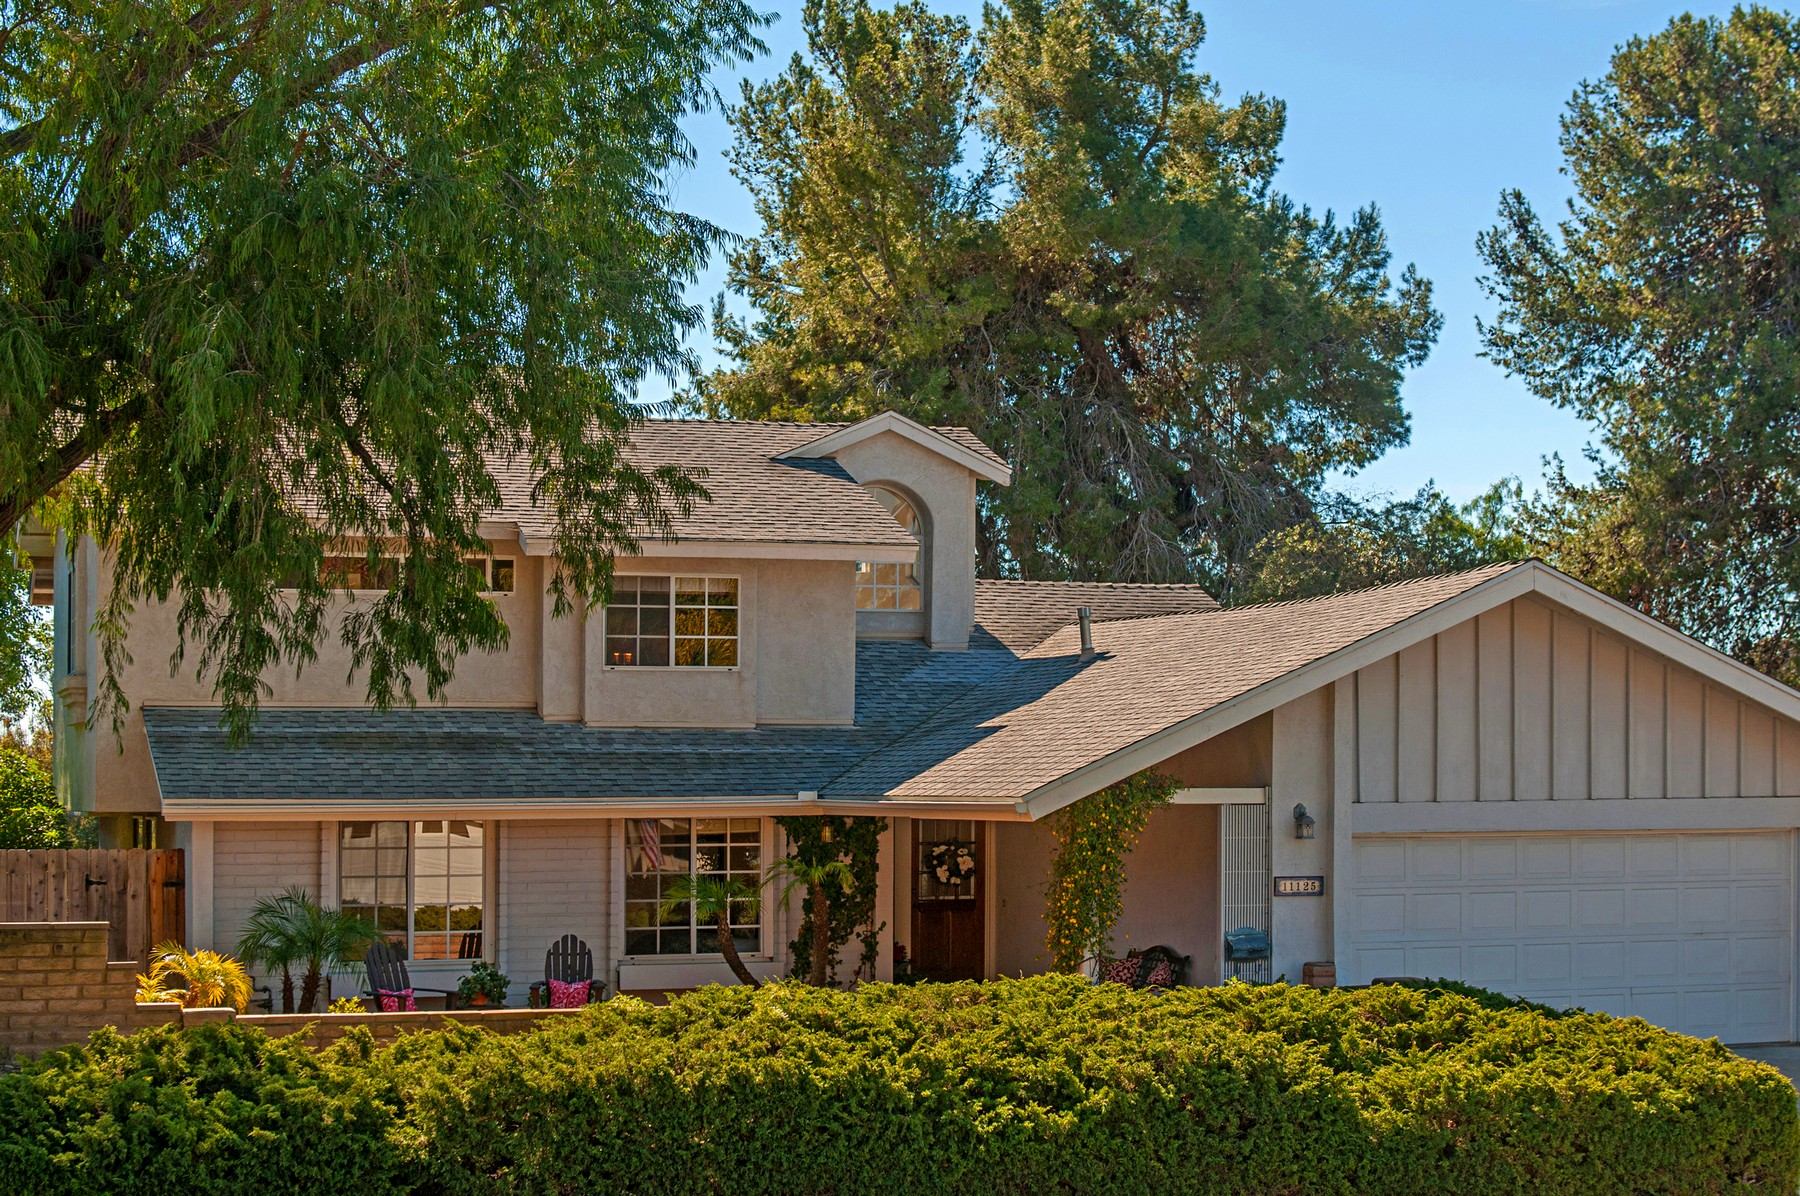 Single Family Home for Sale at 11125 Red Cedar Drive San Diego, California 92131 United States